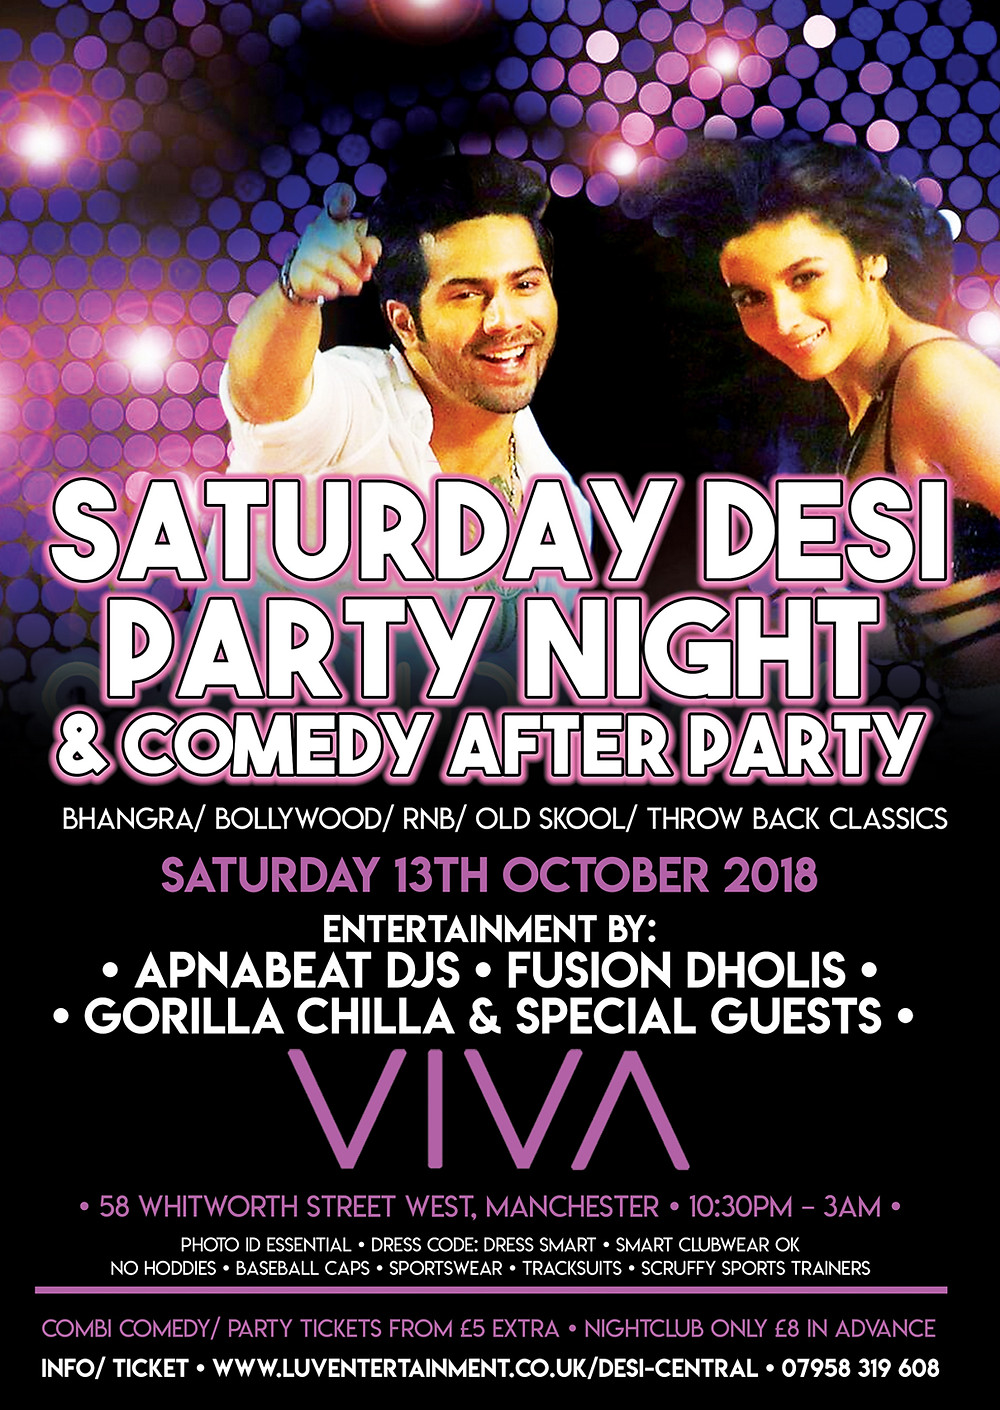 Saturday Saturday Desi Party Night